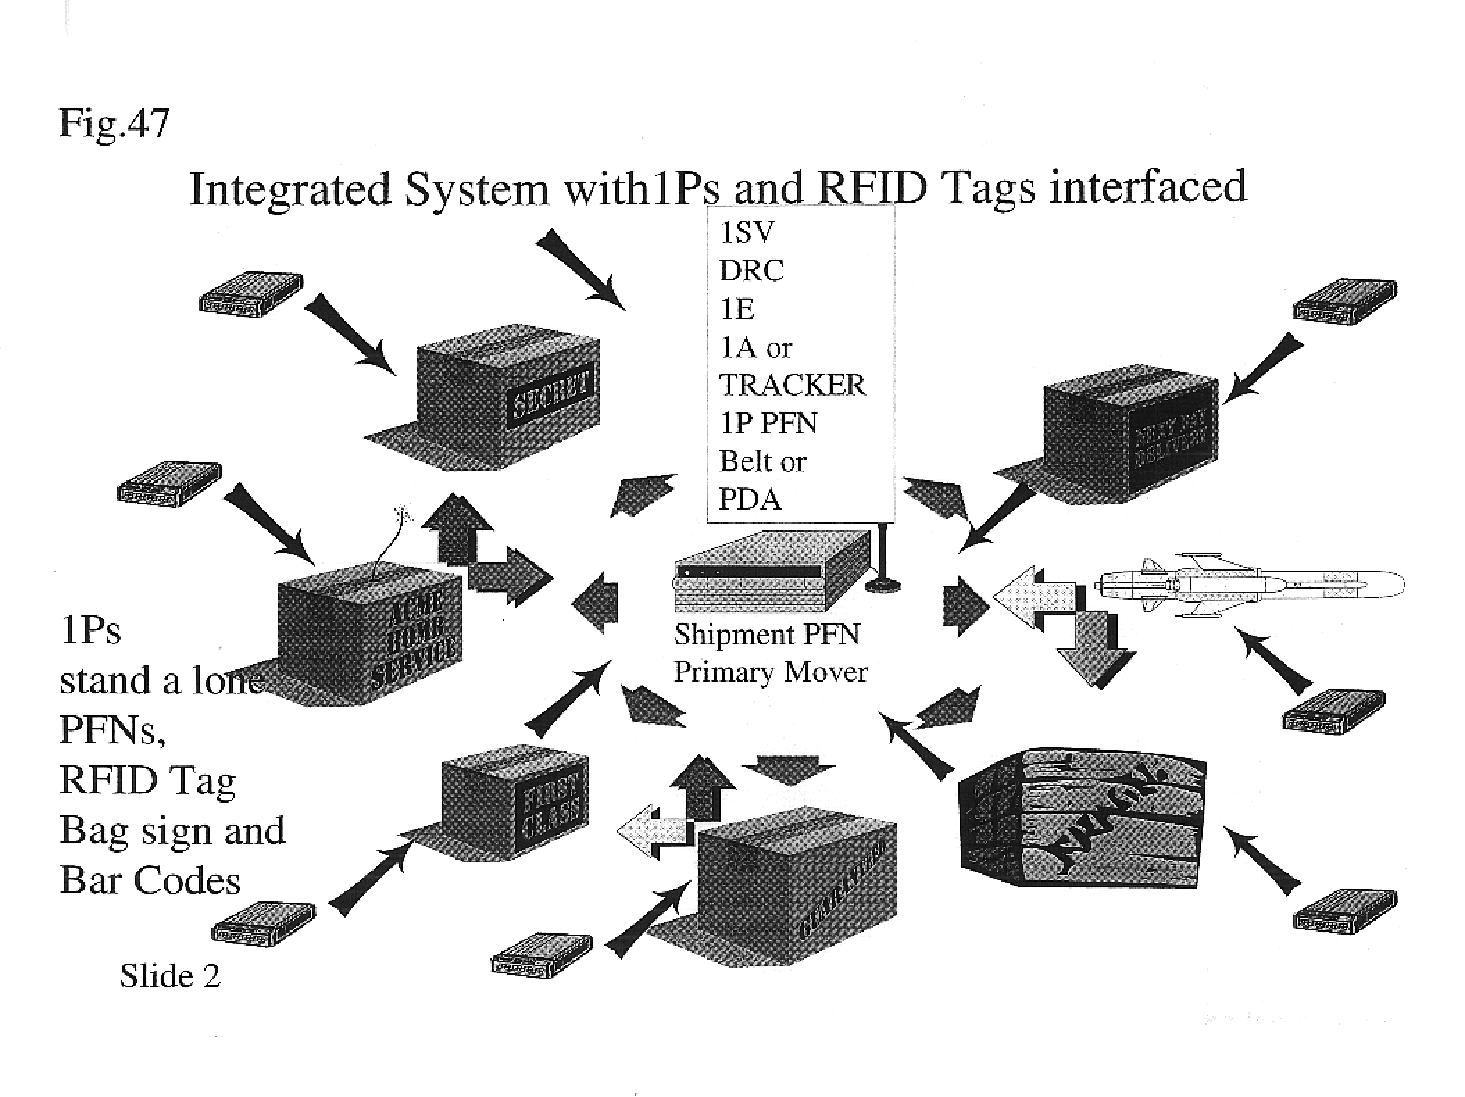 Patent Us 6965816 B2 Microcontrollers Gt Avr Rfid Based Security System With At89s52 0 Petitions